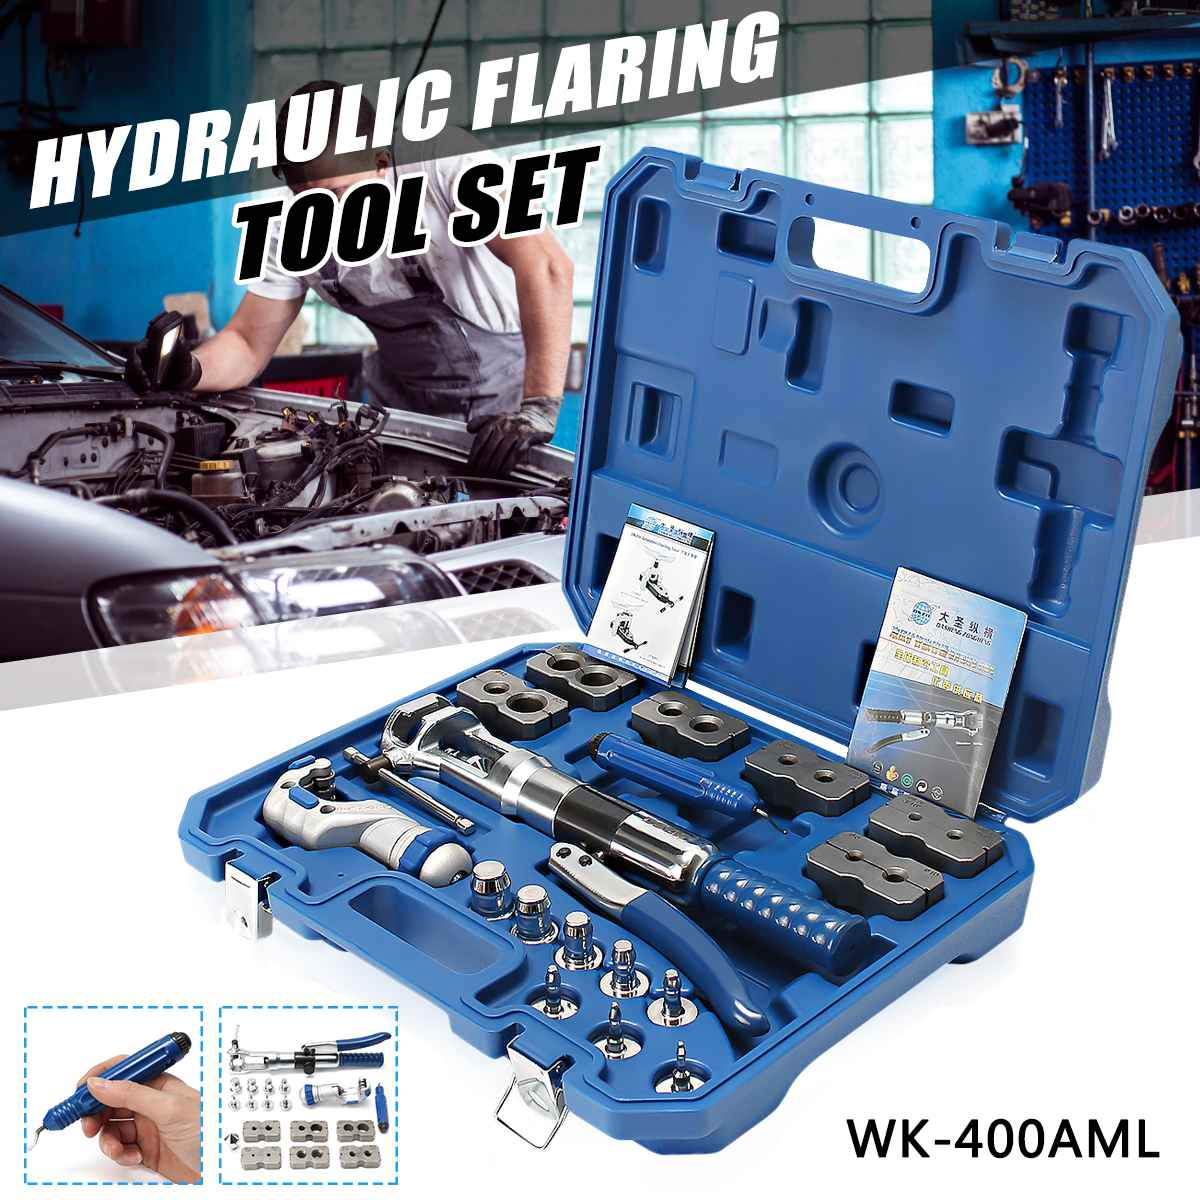 Hydraulic Pipe Expander Set WK-400 Brake Pipe Fuel Line Flaring Tools KIt Stainless Steel Cup-Shaped Mouth For Cup-Shaped HornHydraulic Pipe Expander Set WK-400 Brake Pipe Fuel Line Flaring Tools KIt Stainless Steel Cup-Shaped Mouth For Cup-Shaped Horn